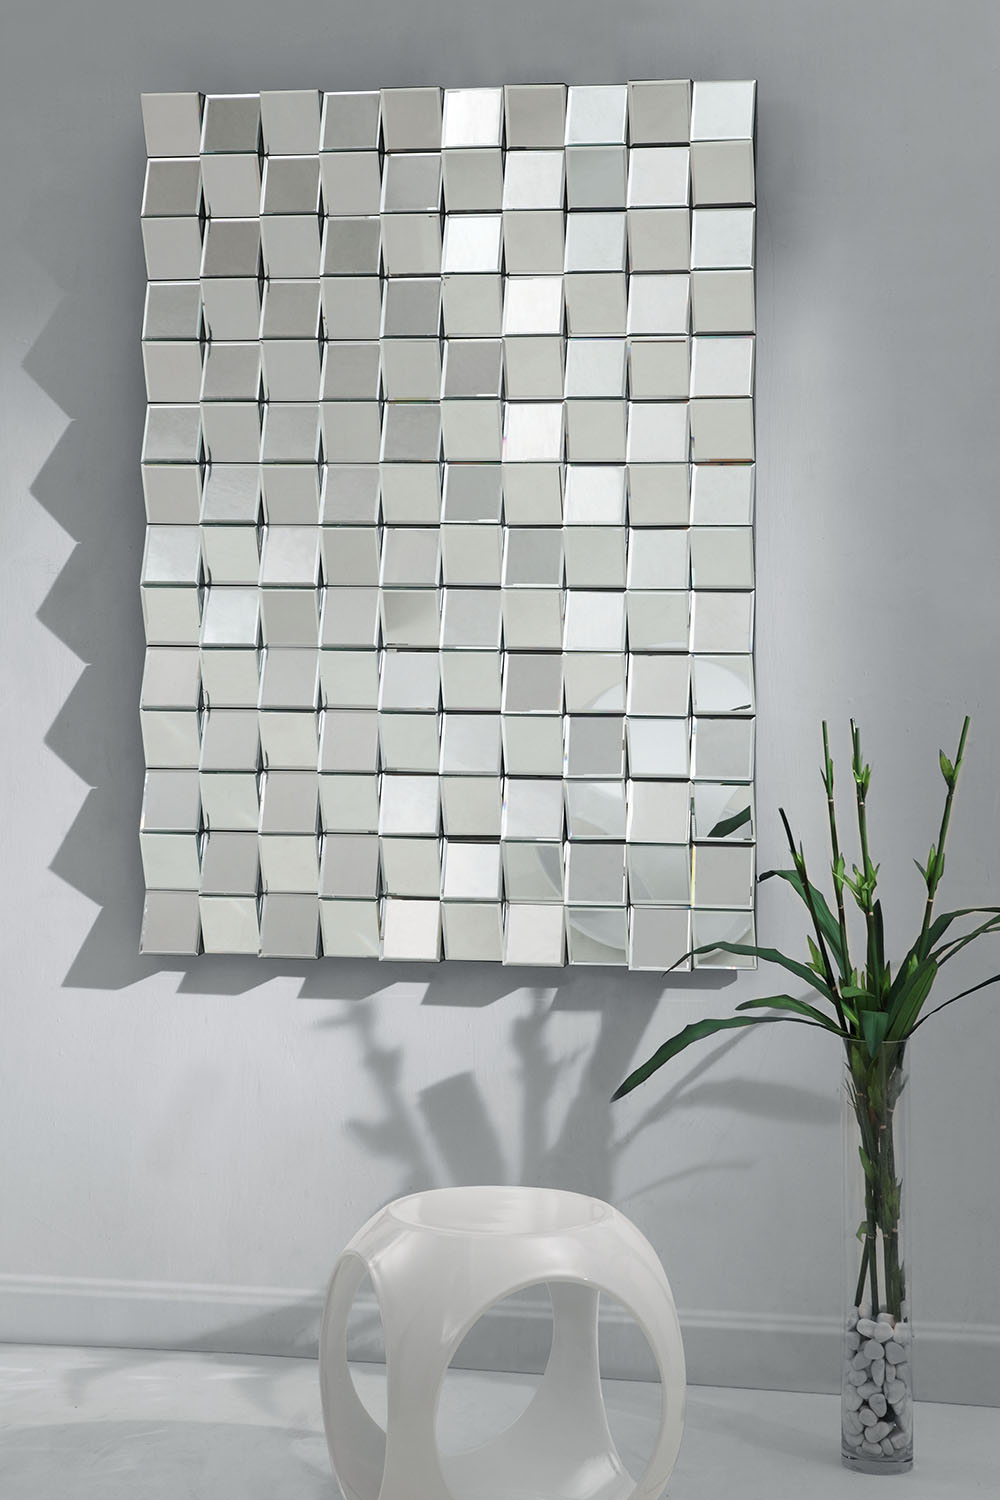 Reflect Your Personal Style with Accent Mirrors